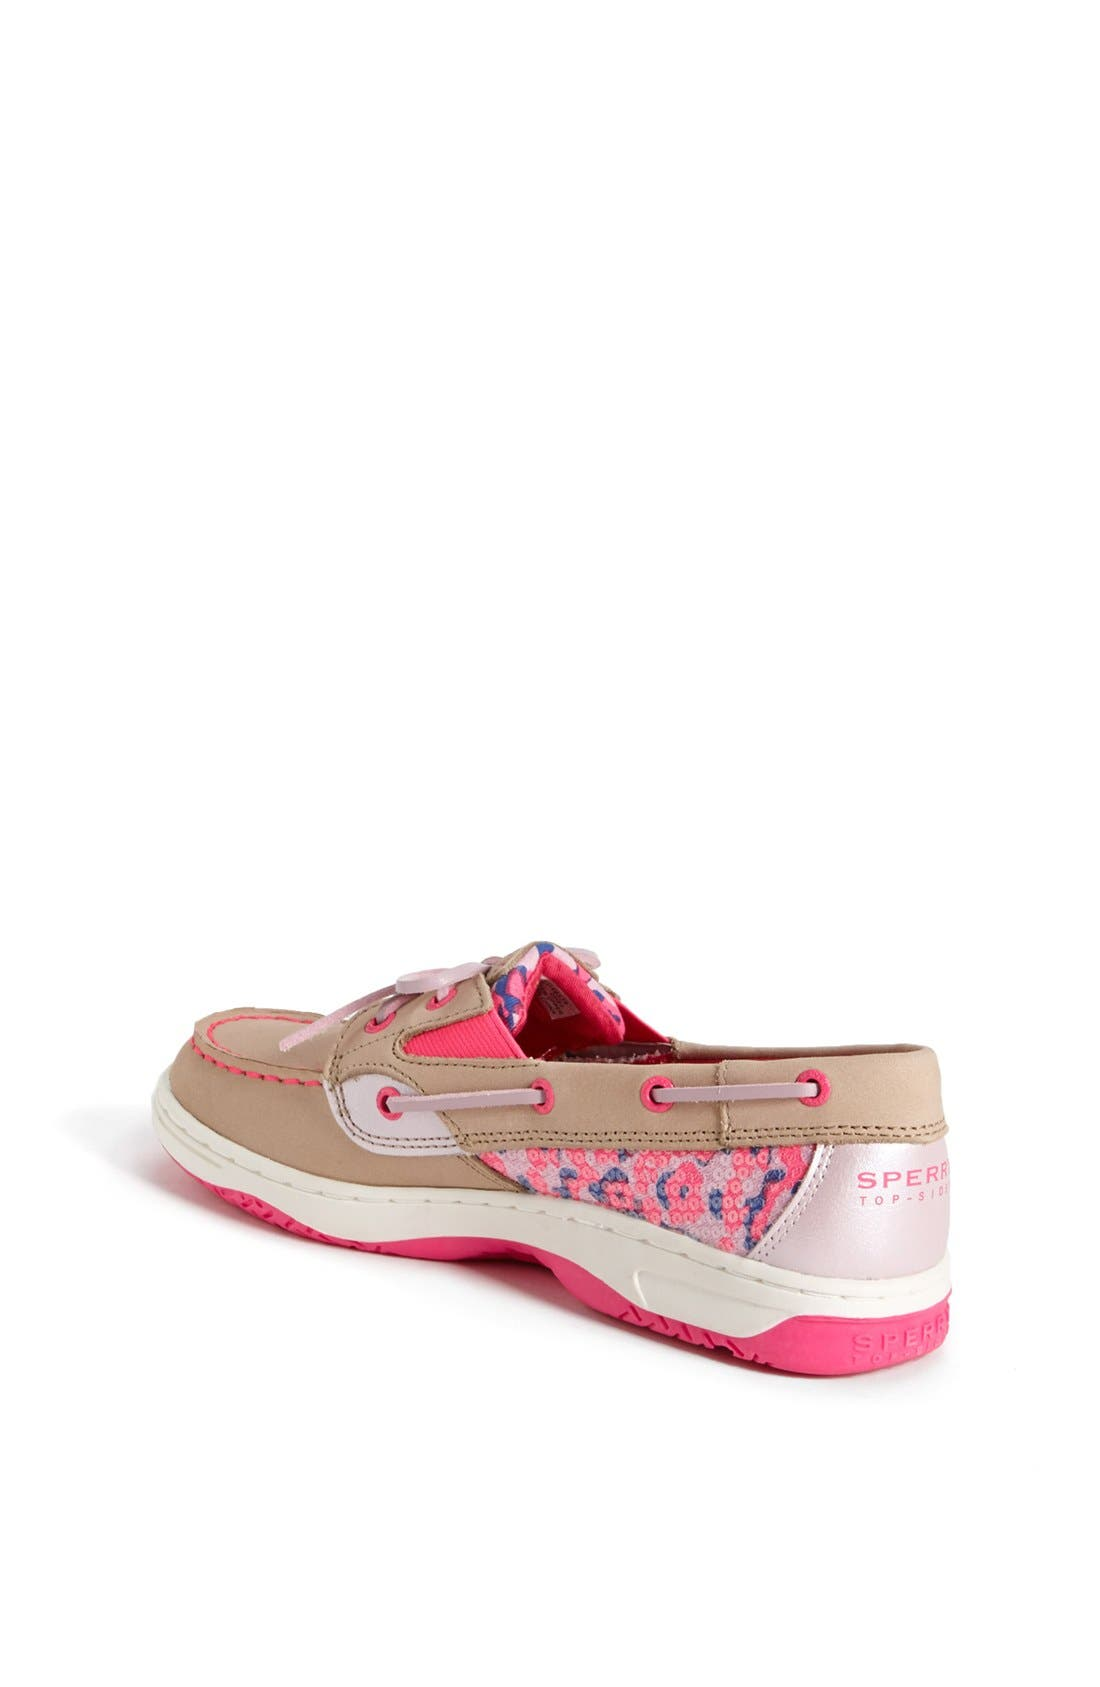 Alternate Image 2  - Sperry Top-Sider® 'Butterflyfish' Boat Shoe (Walker, Toddler, Little Kid & Big Kid)